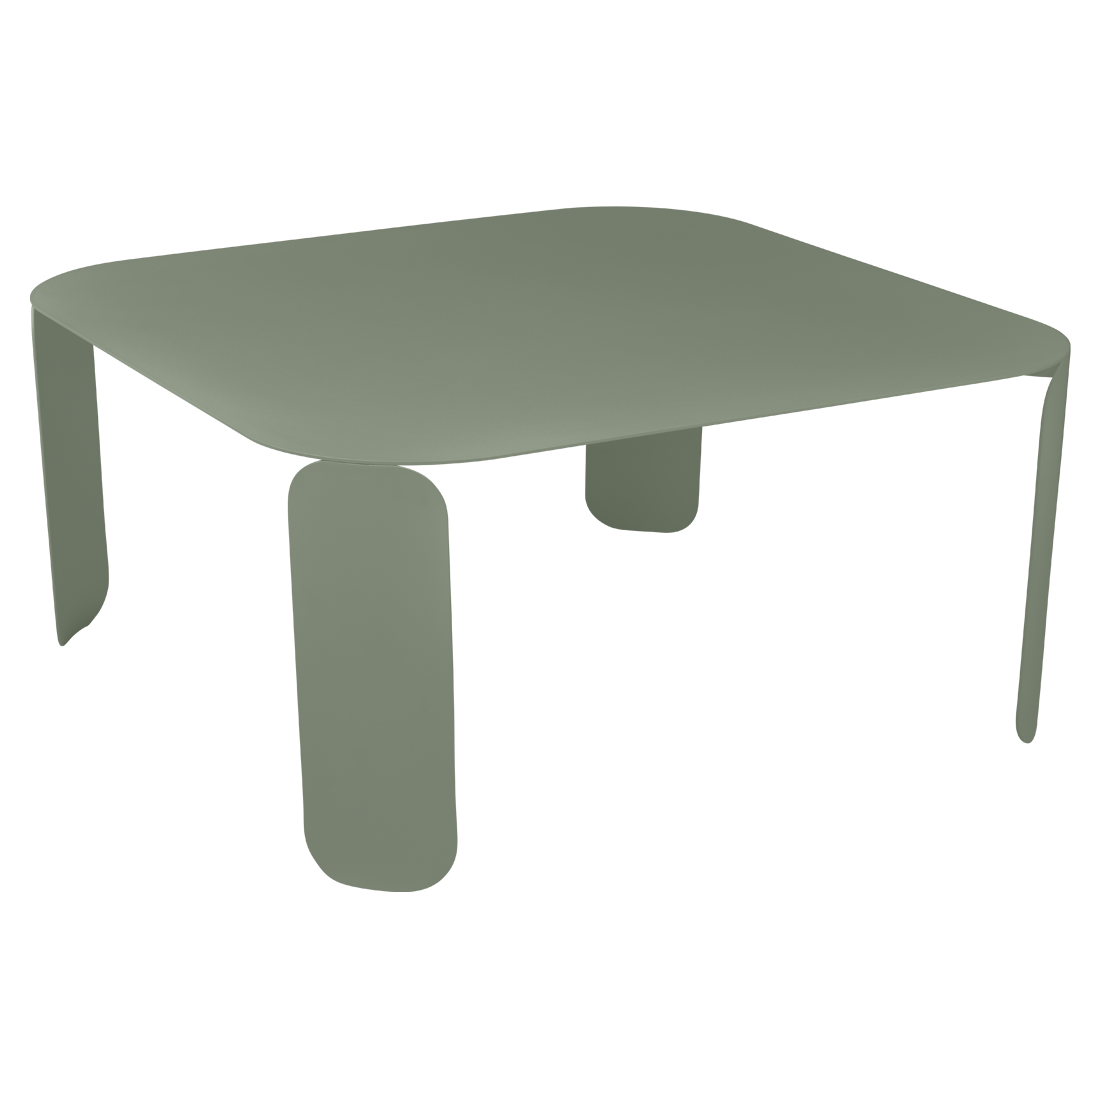 FERMOB Bebop Square Low Table (2 sizes)